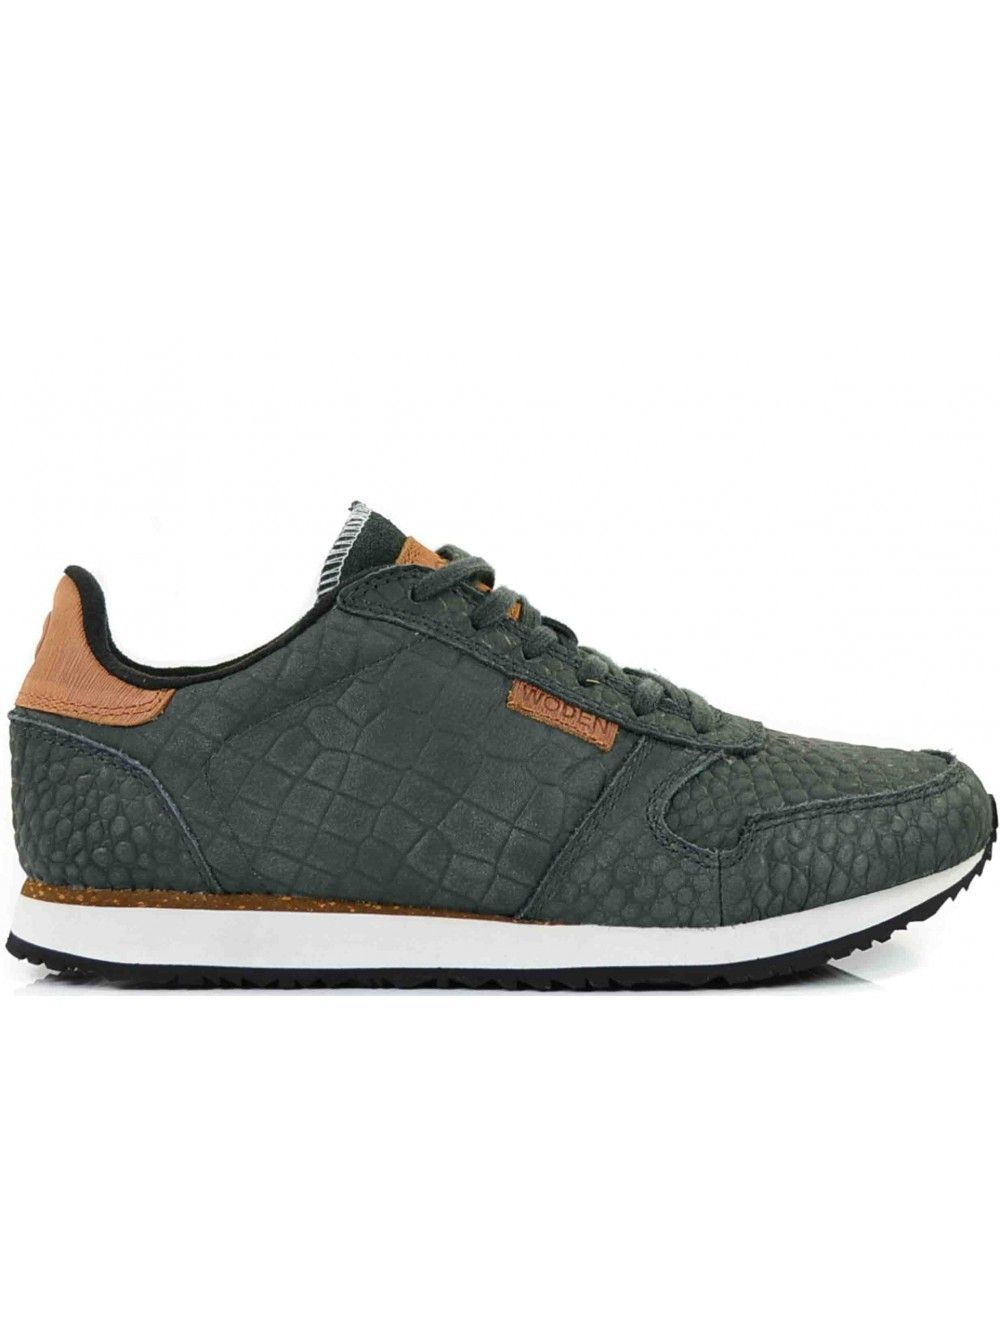 Schoenen Dames Grey Leather schoenen Woden Croco Ydun Dark qxZnp7Tt